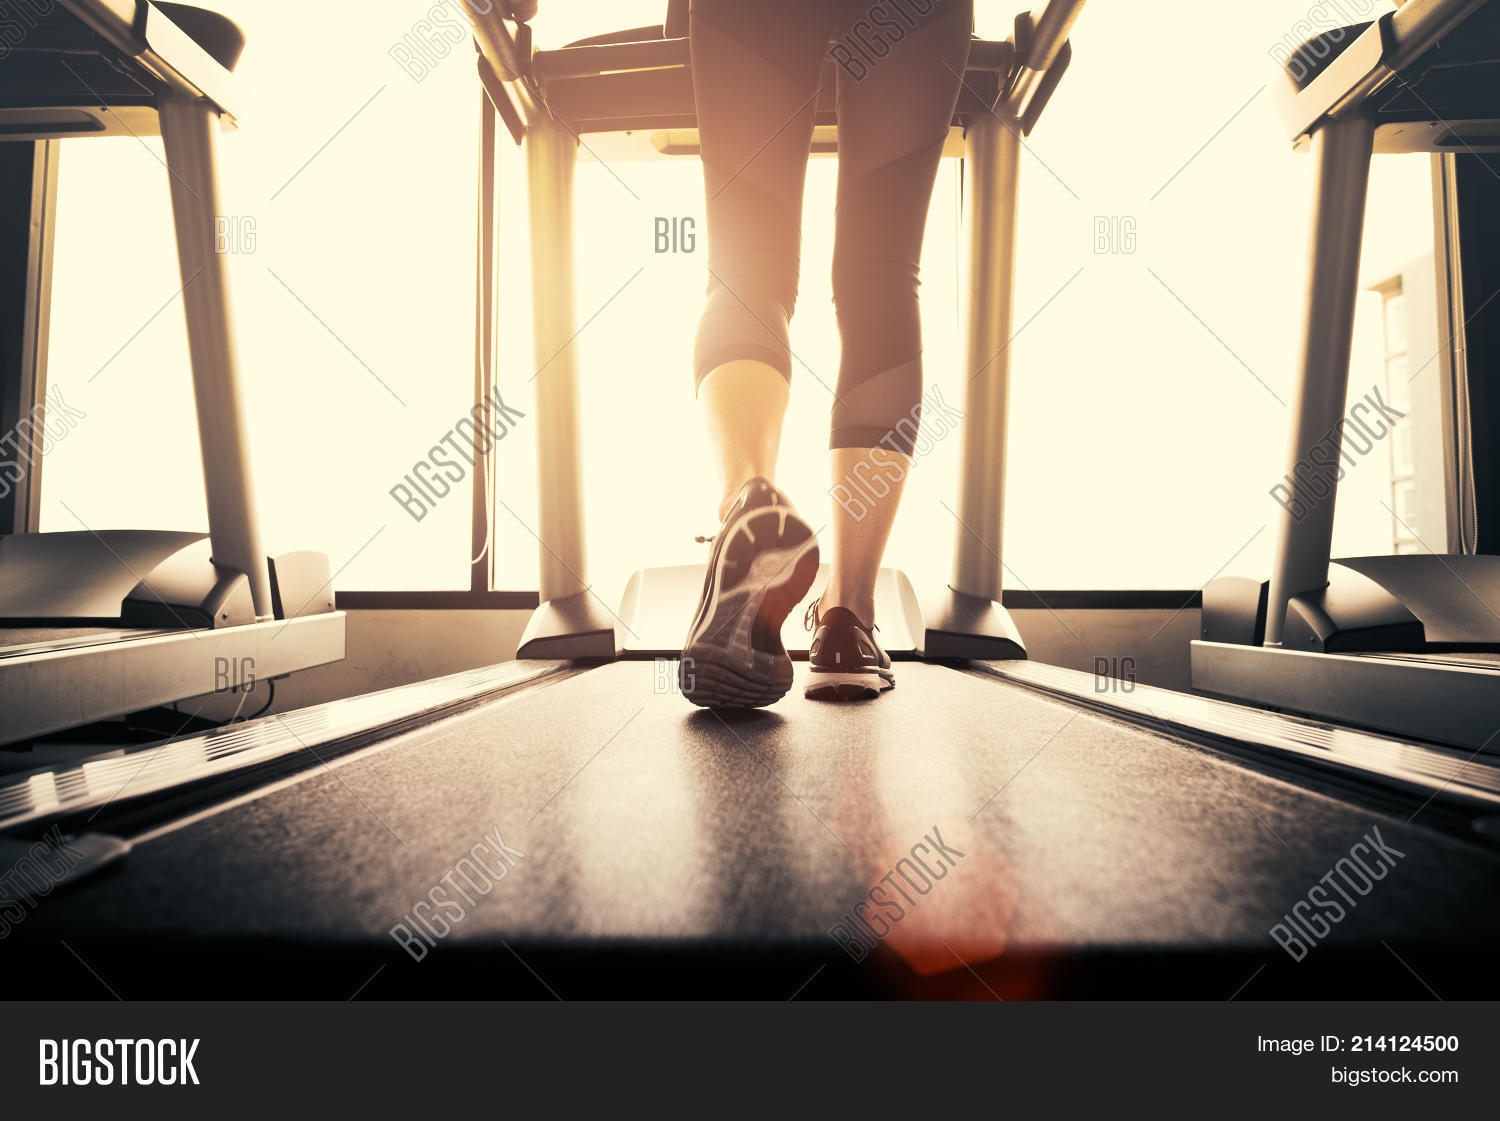 active,activity,adult,athlete,athletic,attractive,back,background,beautiful,body,cardio,care,equipment,exercise,female,fit,fitness,foot,girl,gym,happy,health,healthy,legs,lifestyle,machine,motion,muscular,orange,people,person,portrait,rays,runner,running,sneakers,sport,sportswear,step,strength,strong,sun,tone,train,treadmill,view,warm,wellness,woman,workout,young